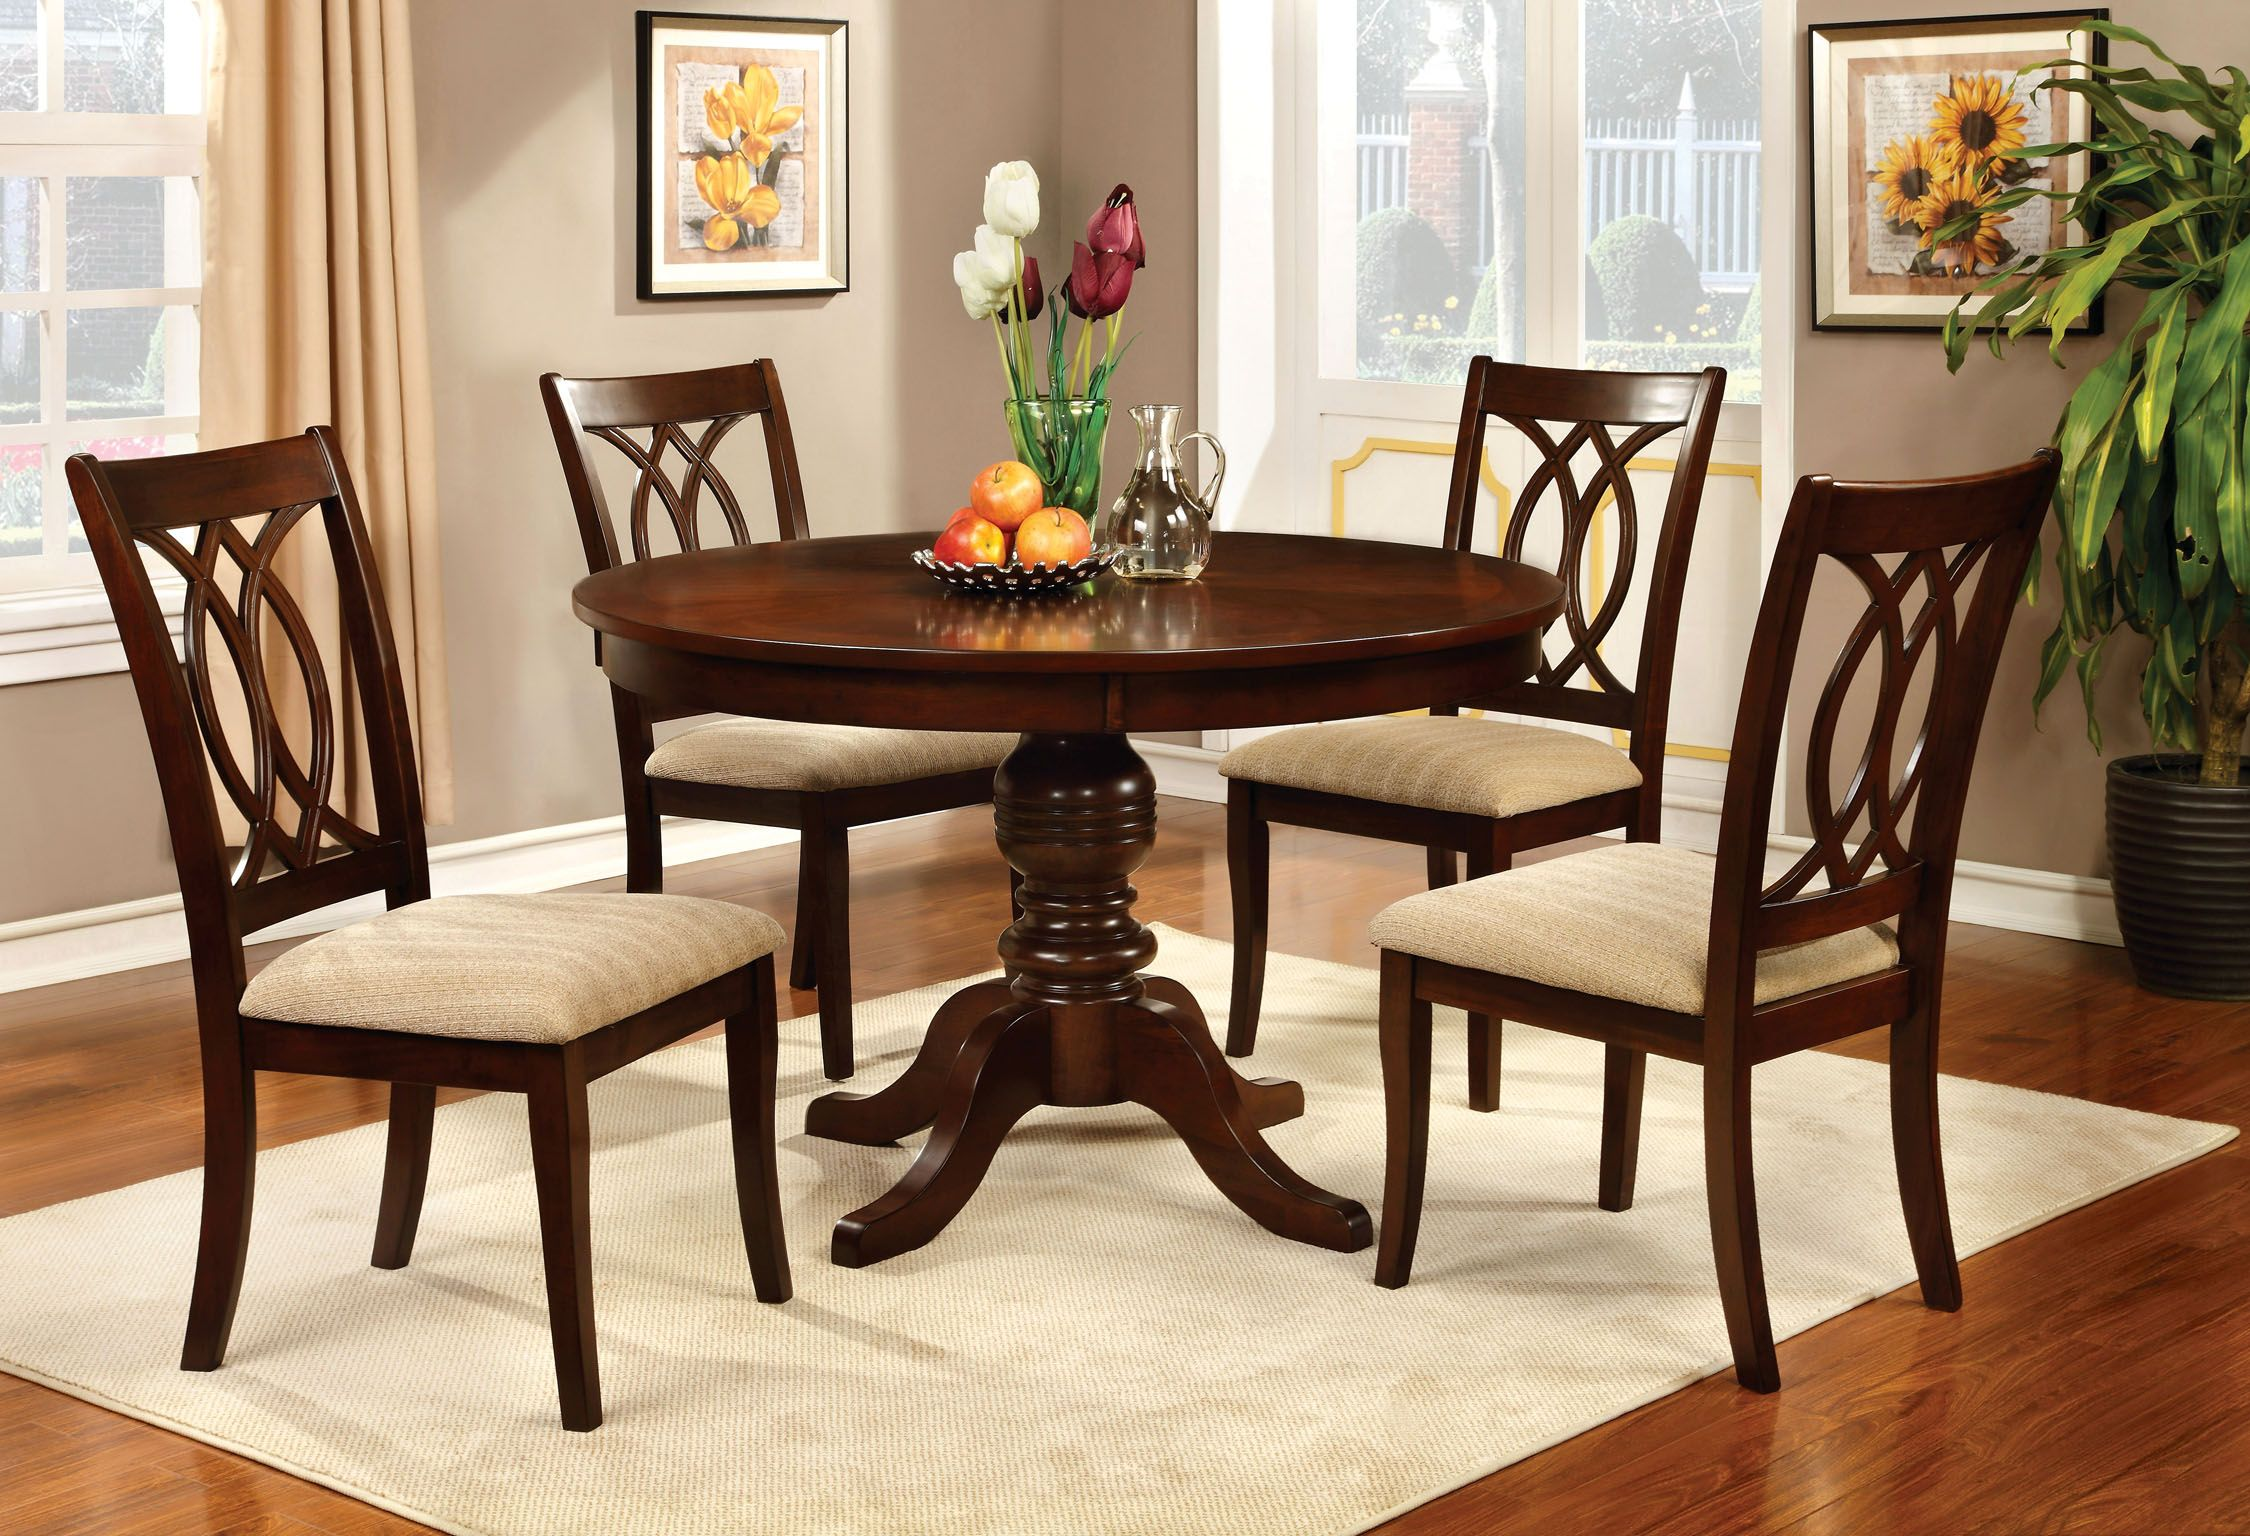 7f15719ea056 Furniture of America Brennan 5-Piece Round Brown Cherry Dining Set ...